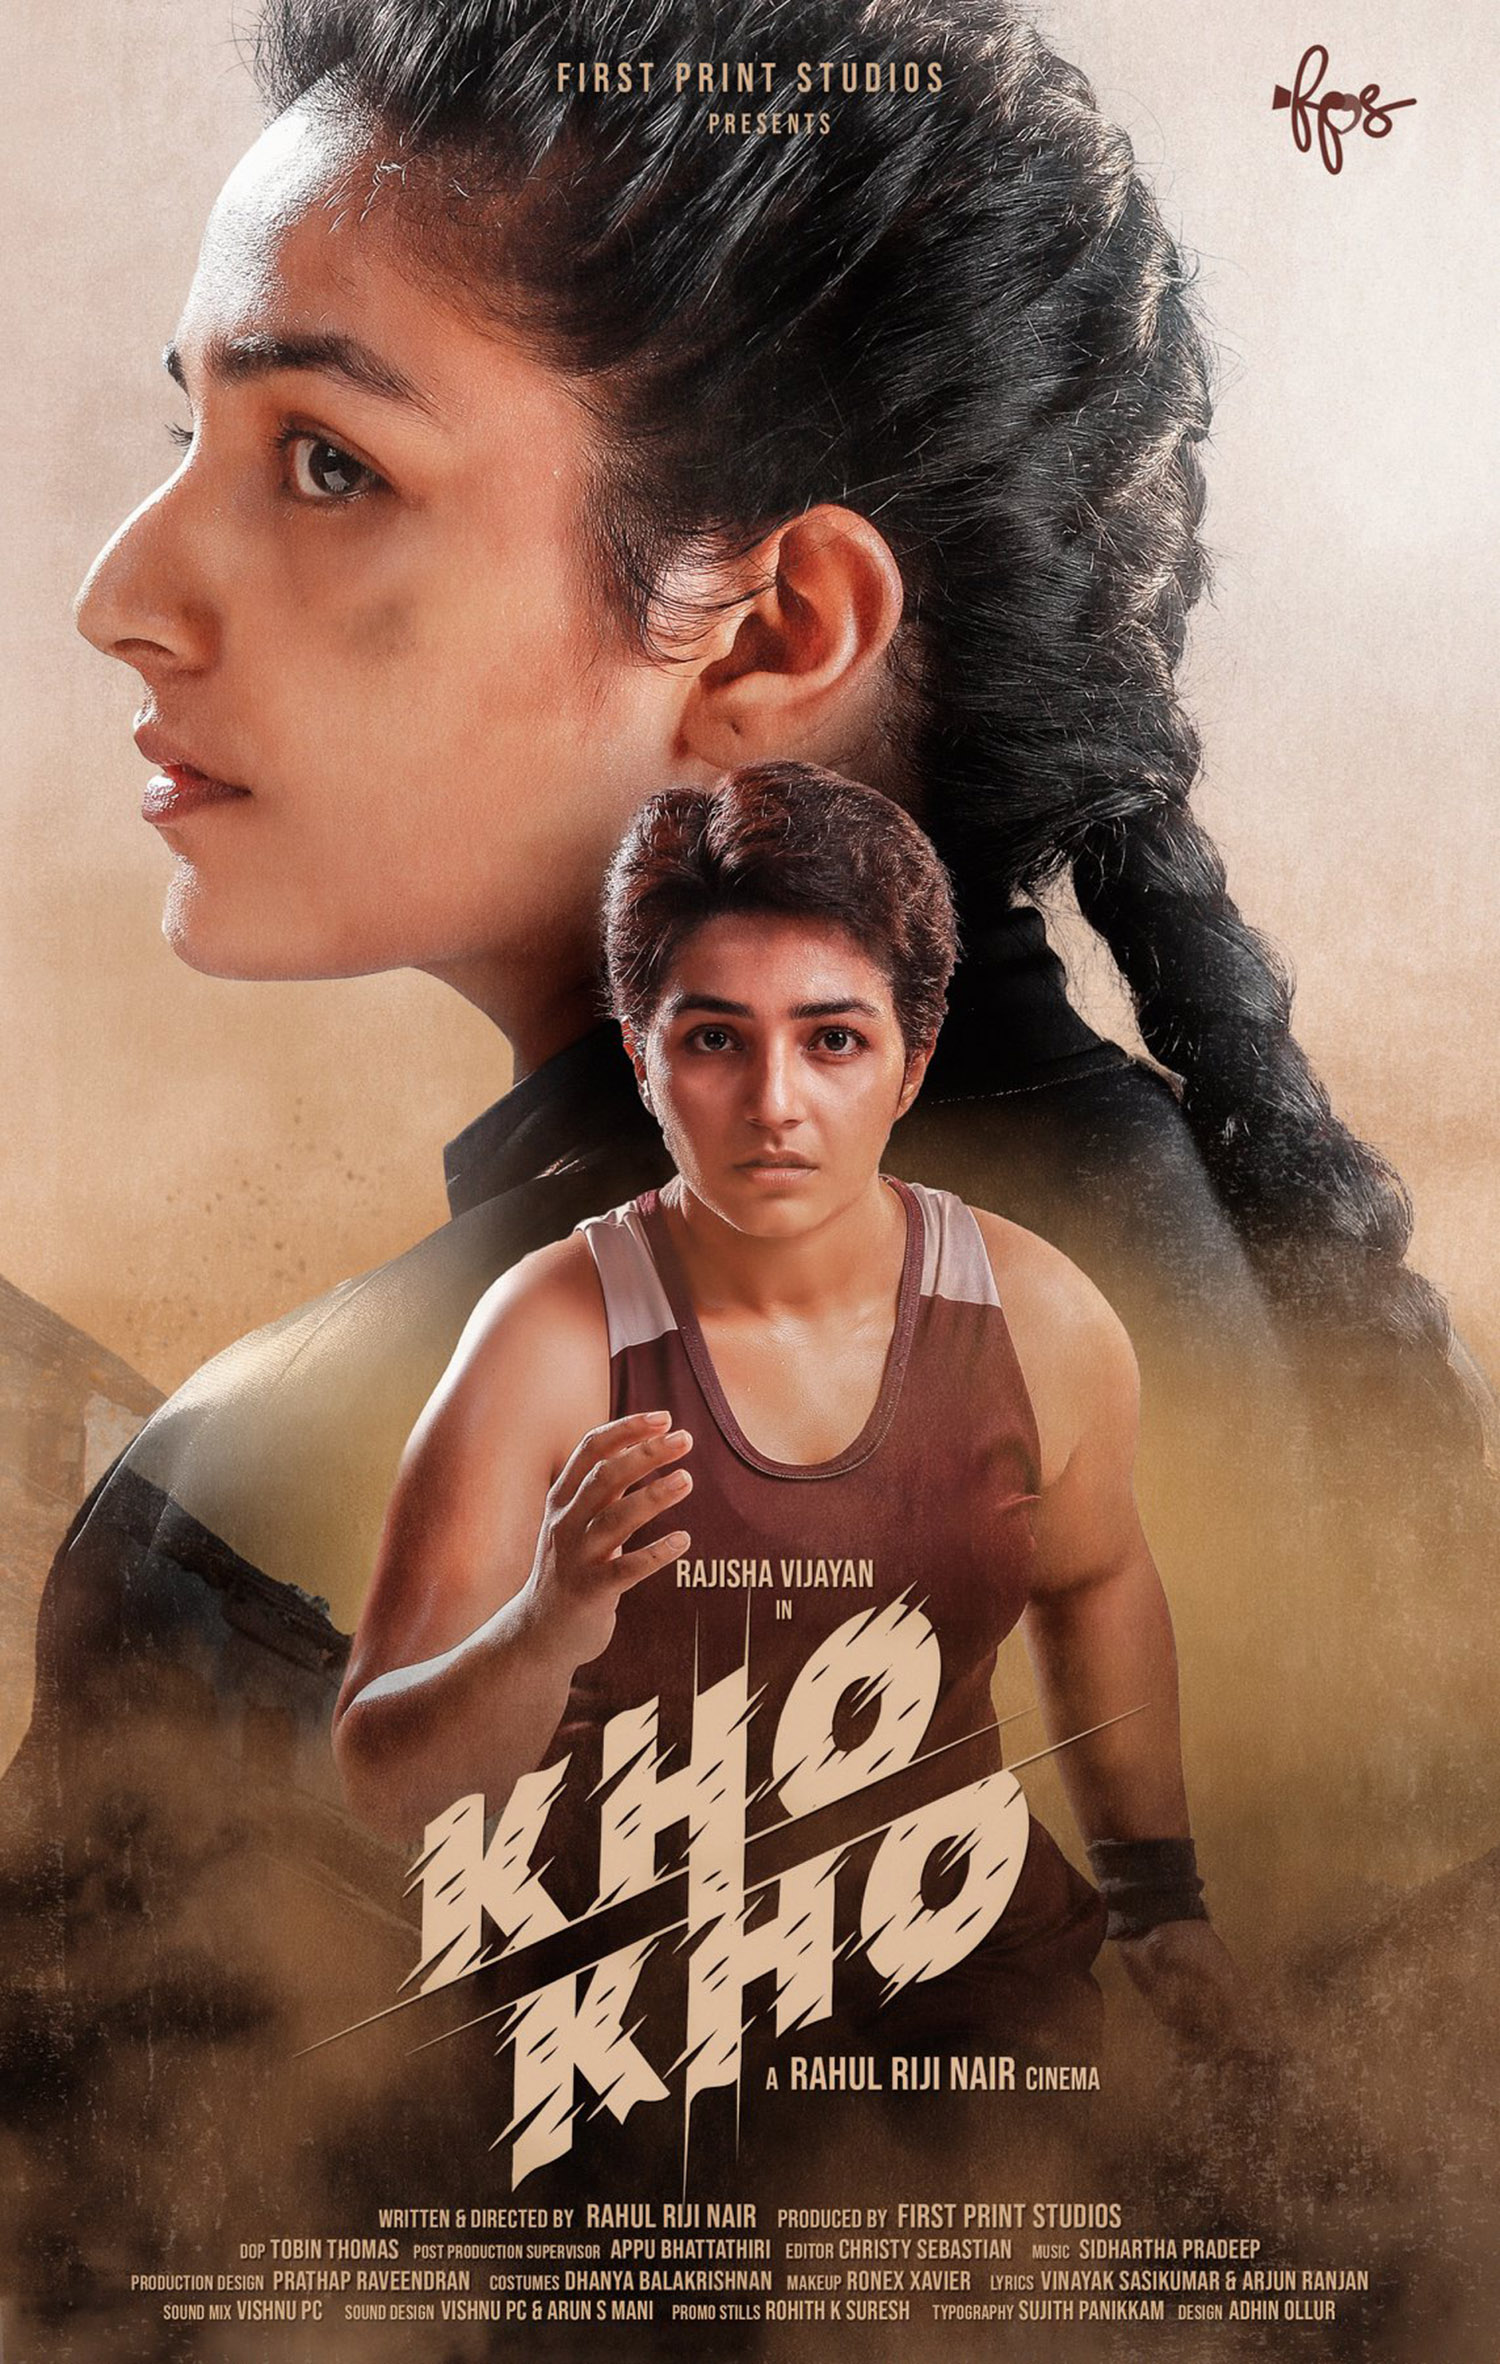 Kho Kho, Kho Kho malayalam movie, Kho Kho movie,actress rajisha vijayan,actress rajisha vijayan new film  Kho Kho,rajisha vijayan sports based new film,sports based malayalam movie,malayalam cinema,mollywood cinema, Kho Kho first look poster rajisha vijayan,rajisha vijayan latest movie still,rajisha vijayan new movie look